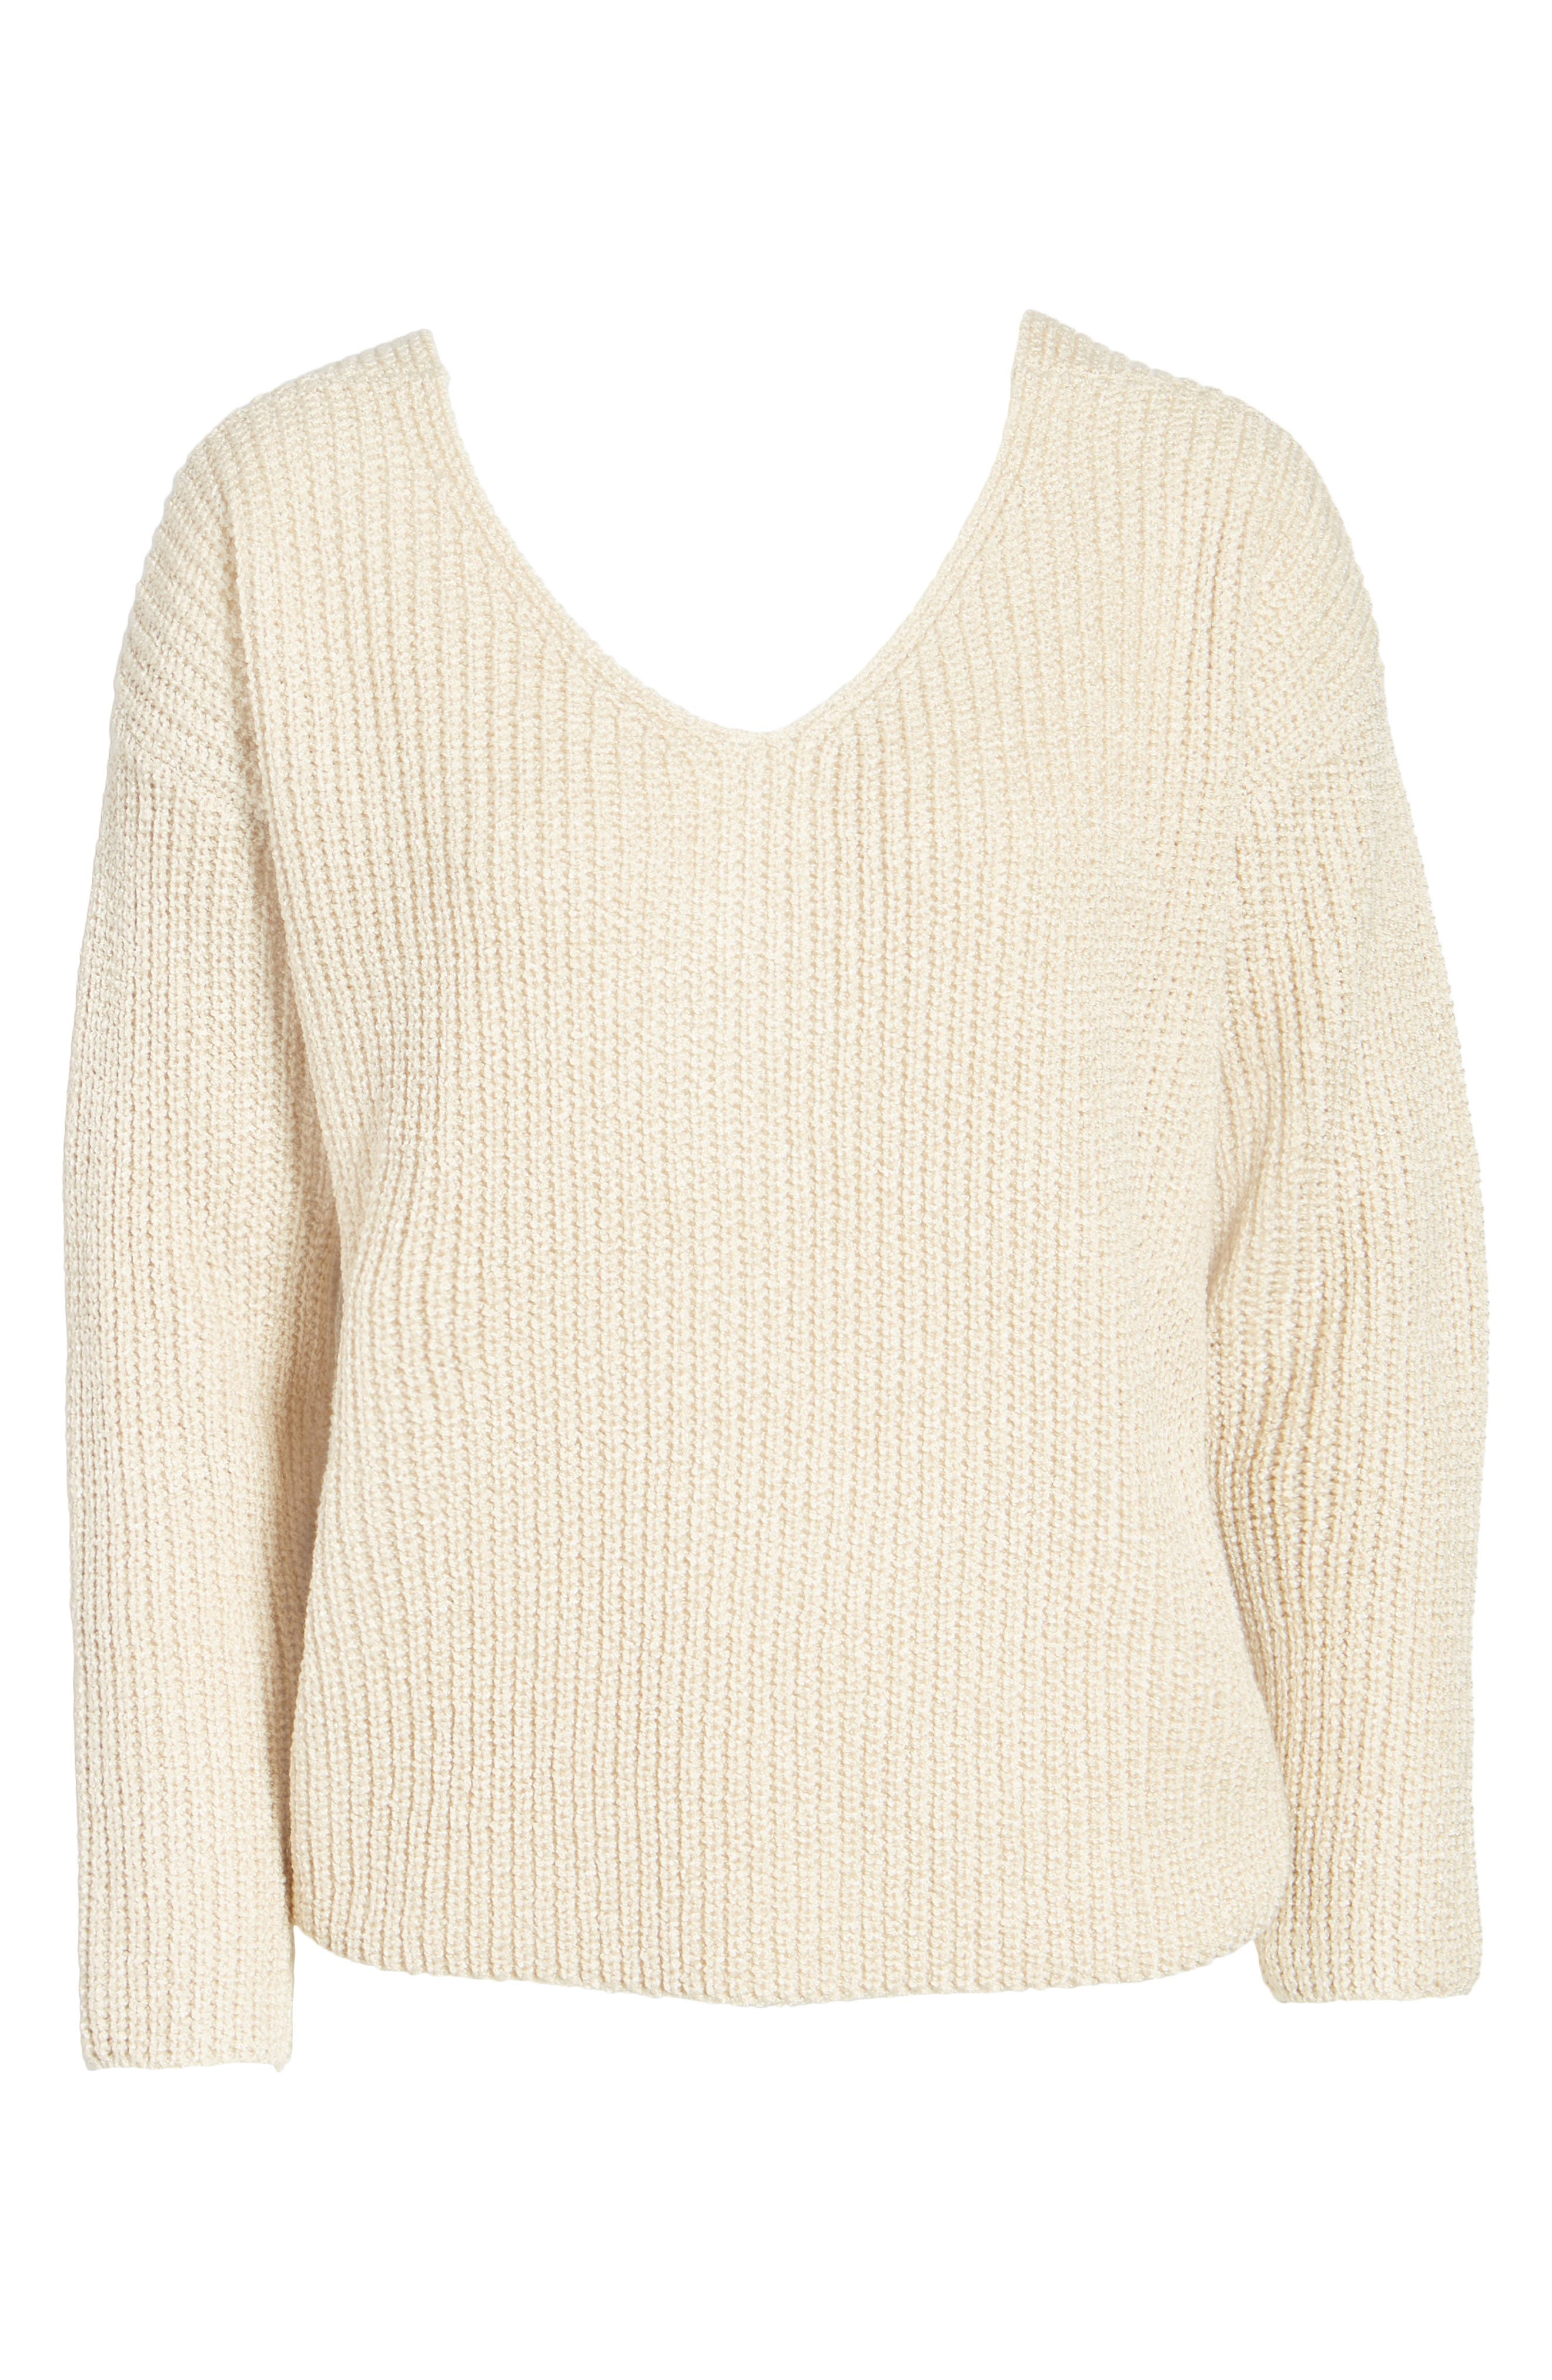 Twist Back Sweater,                             Alternate thumbnail 6, color,                             Oatmeal